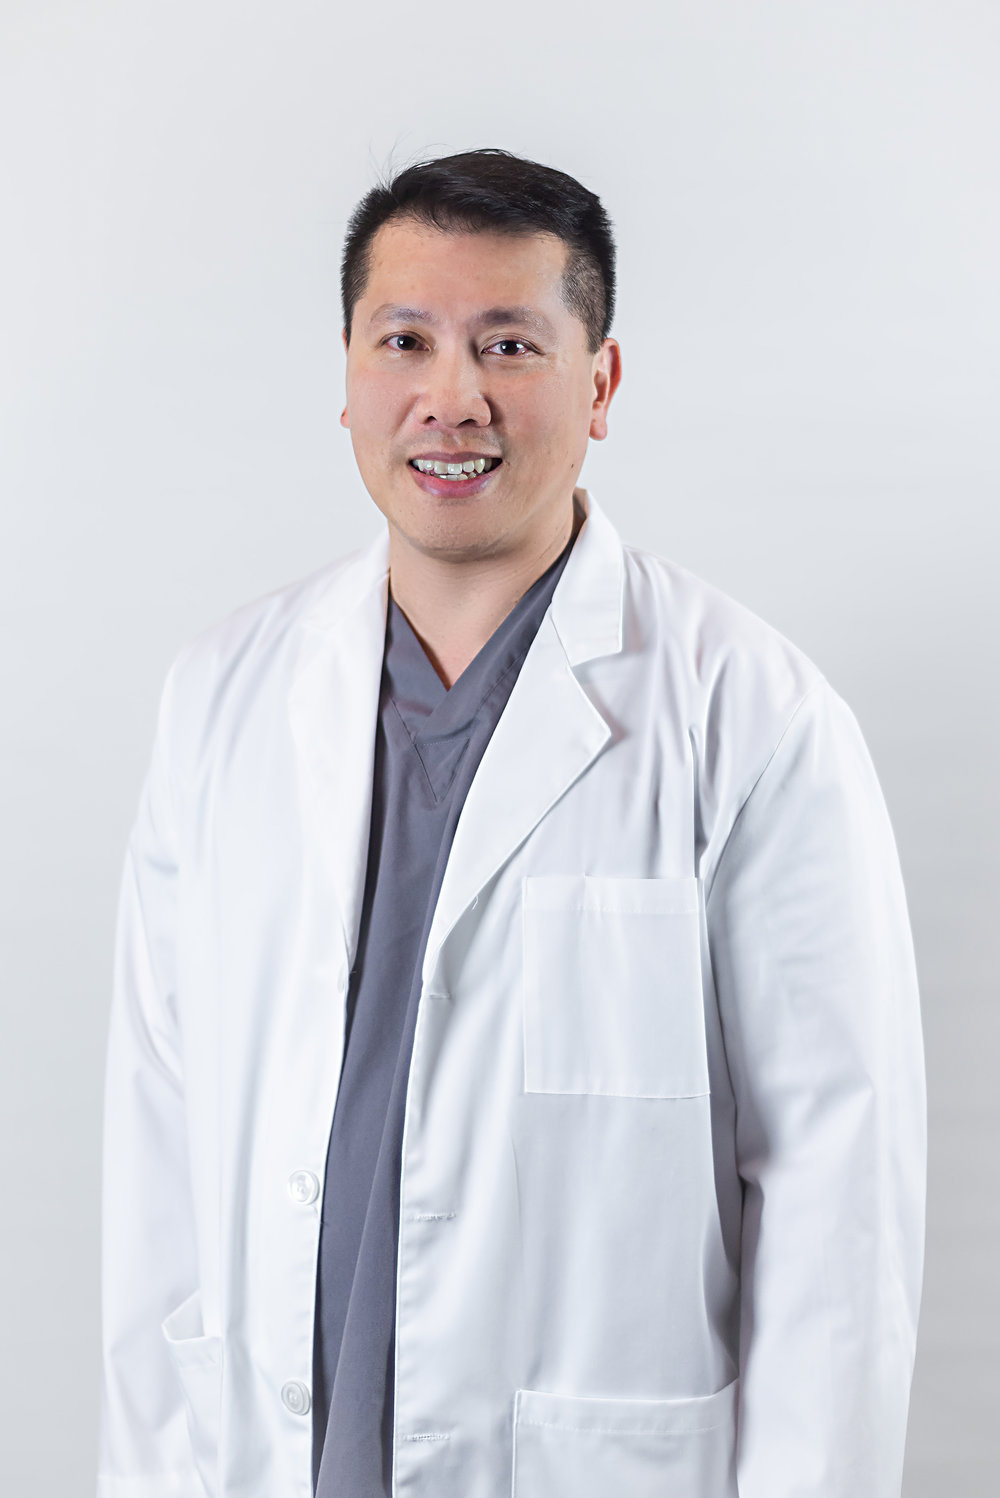 Meet Dr. Ekapoj Thongin at 8 to 8 Dental Care.